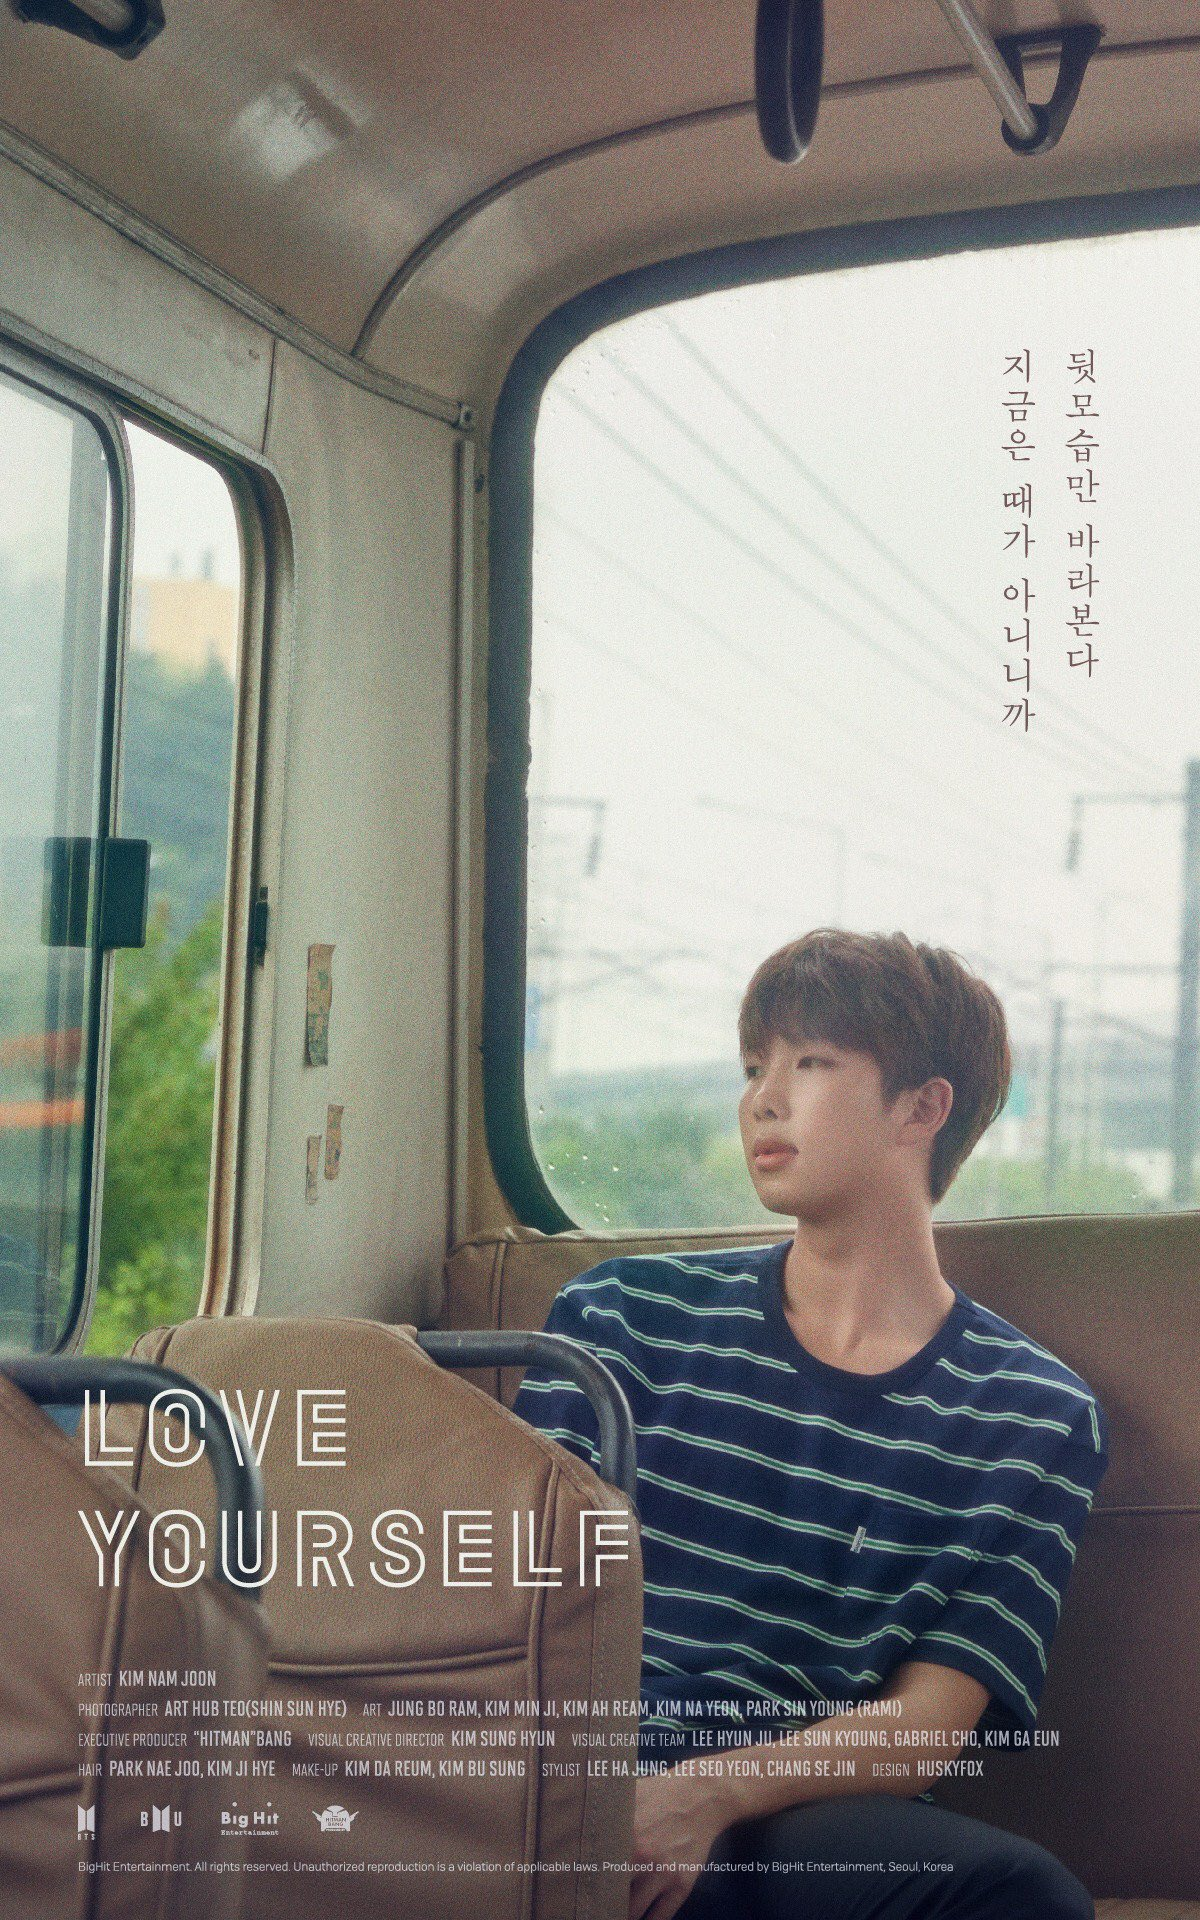 'I can only look at you from behind, as now's not the right moment' #BTS #방탄소년단 #LOVE__YOURSELF https://t.co/Nrp8byoPcs